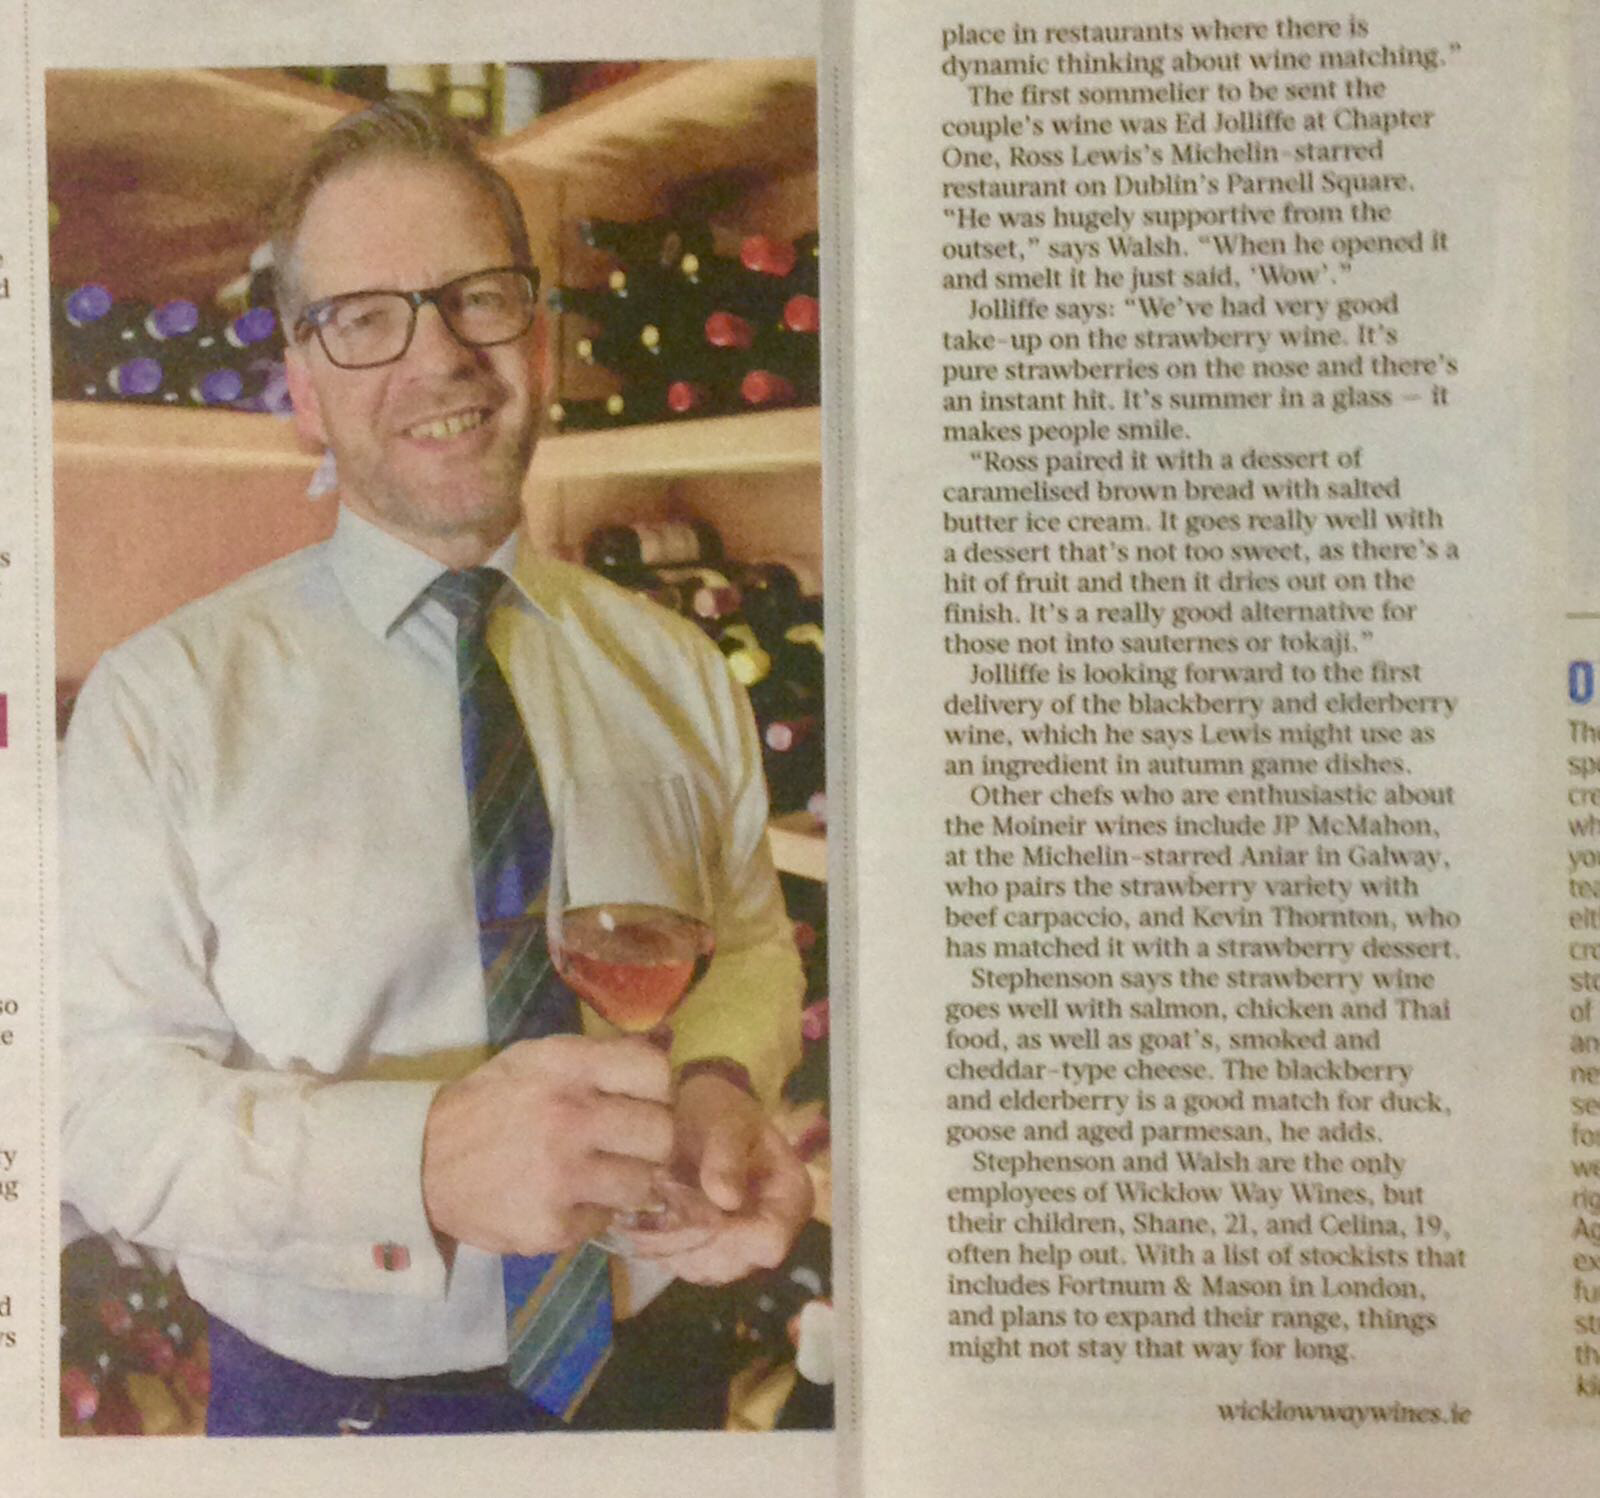 Ed Joliffe, Chapter One, Móinéir strawberry wine by Wicklow Way Wines.png